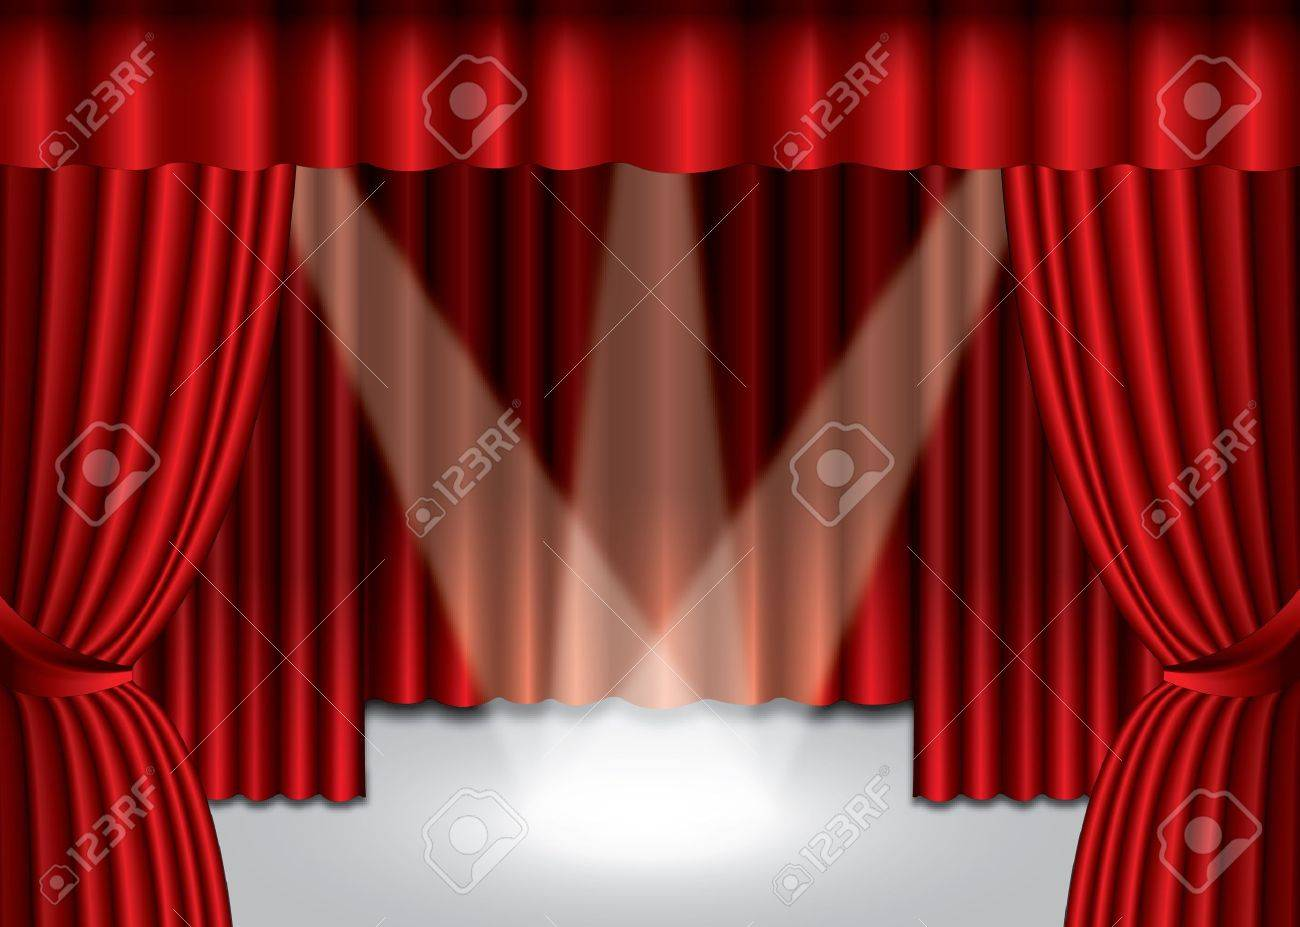 Stage curtains spotlight - Red Theater Curtain With Spotlight On Stage Stock Vector 15702976